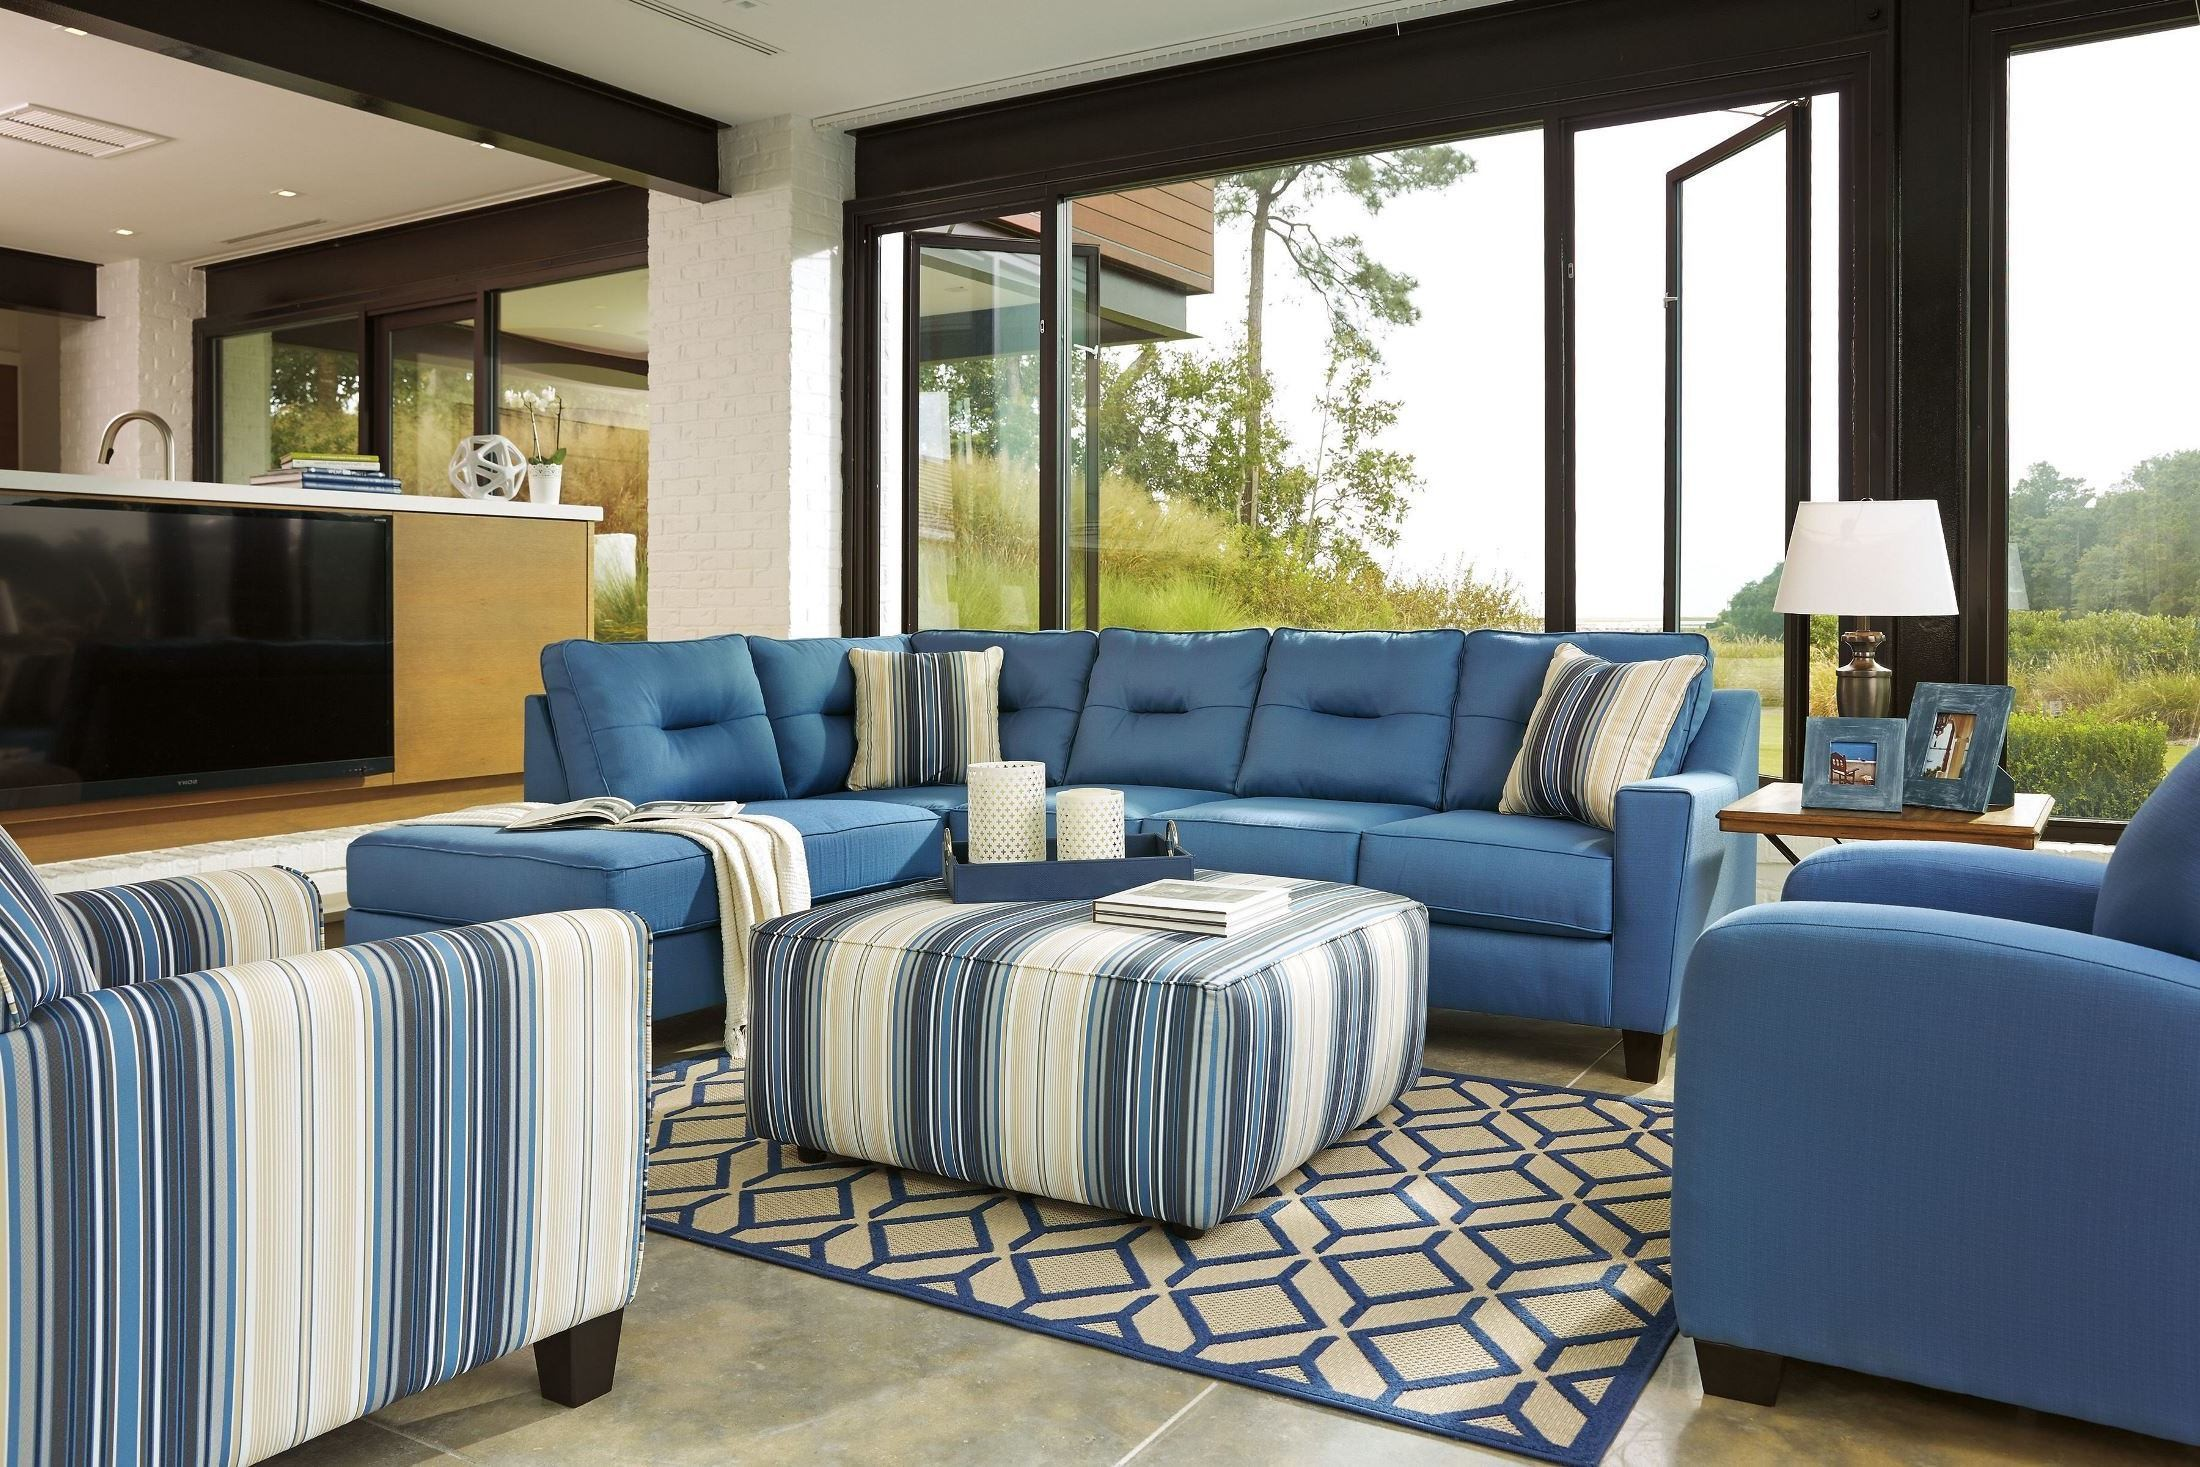 Tremendous Furnitureetc Furniture More Kirwin Nuvella Blue Laf Home Interior And Landscaping Palasignezvosmurscom